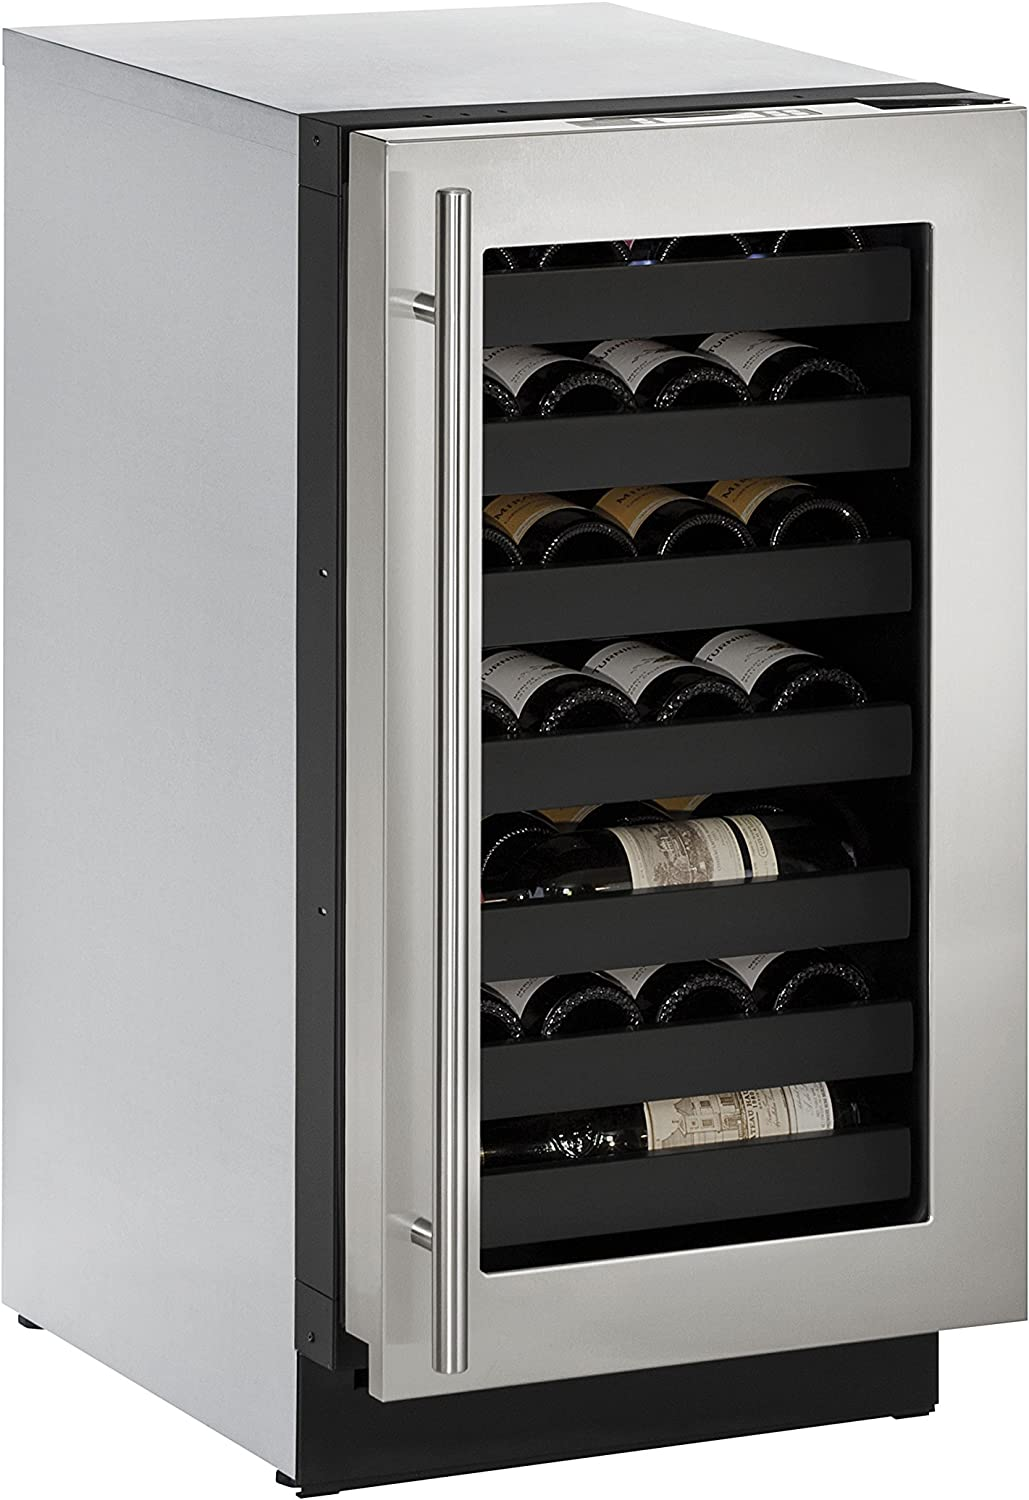 U-Line U3018WCS00A Built-in Wine Clearance SALE Limited time Storage Stainless 18